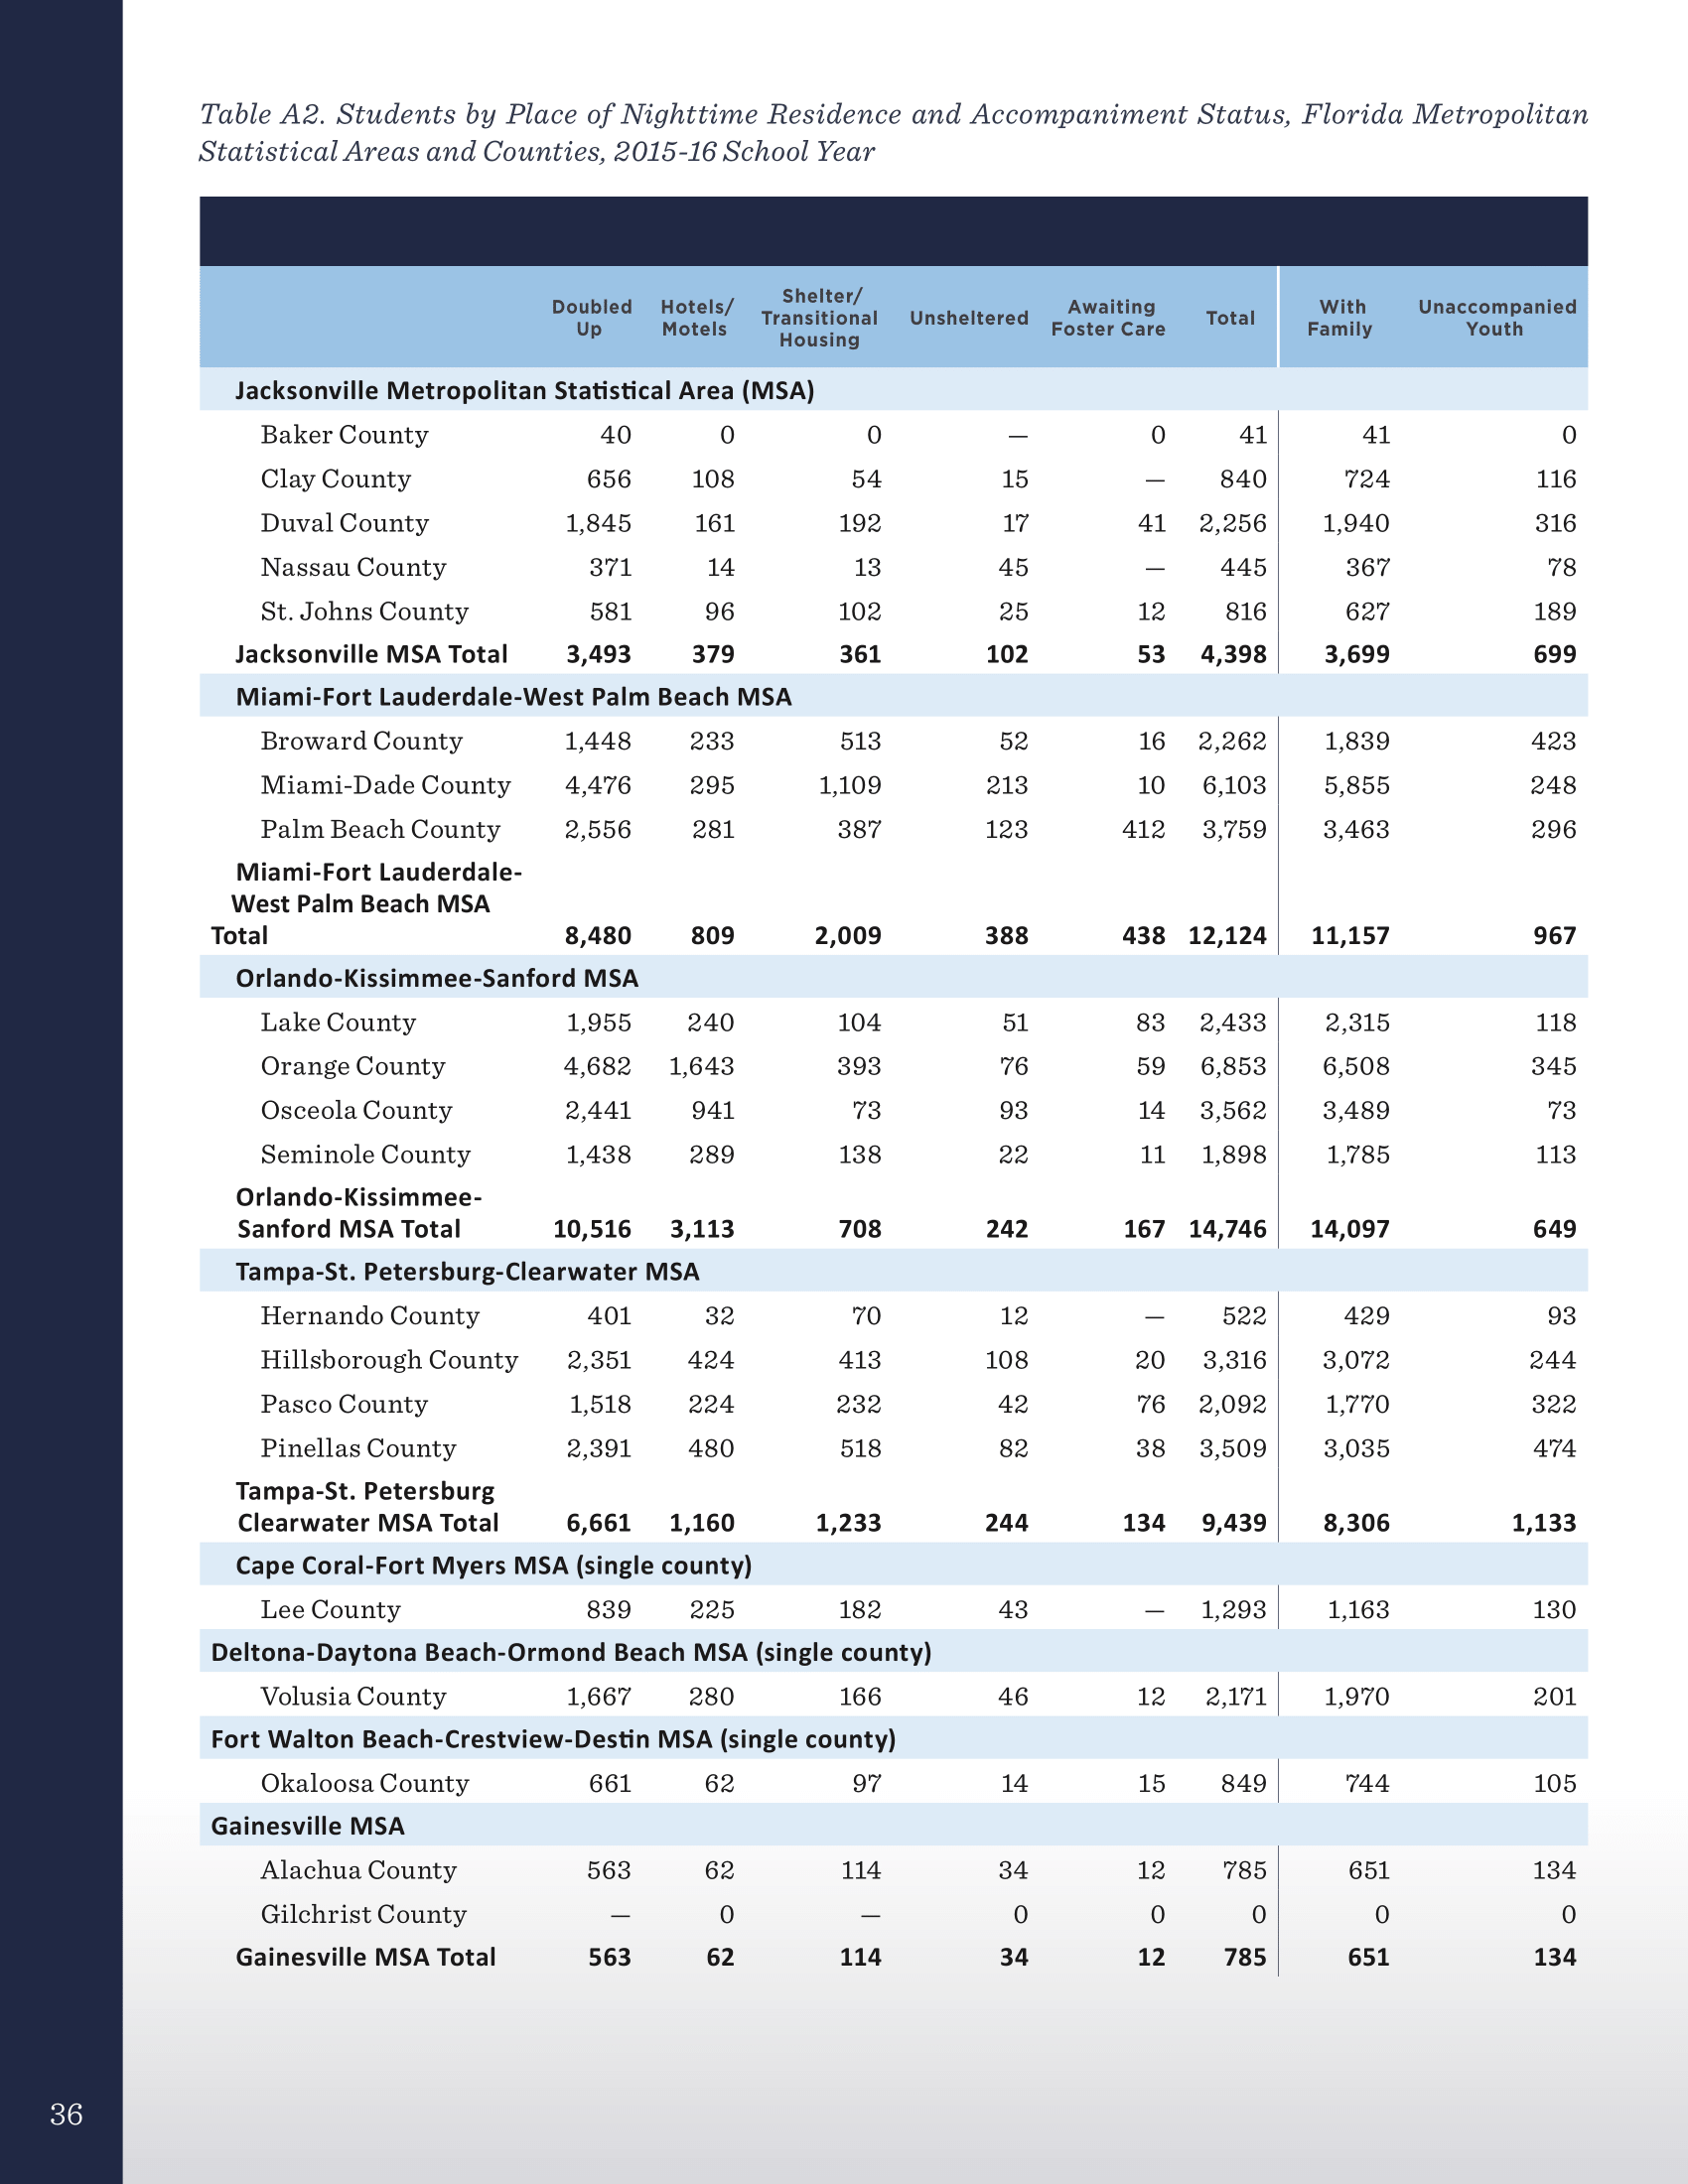 Homelessness and Education in Florida Impacts on Children and Youth - October 2017-36.png